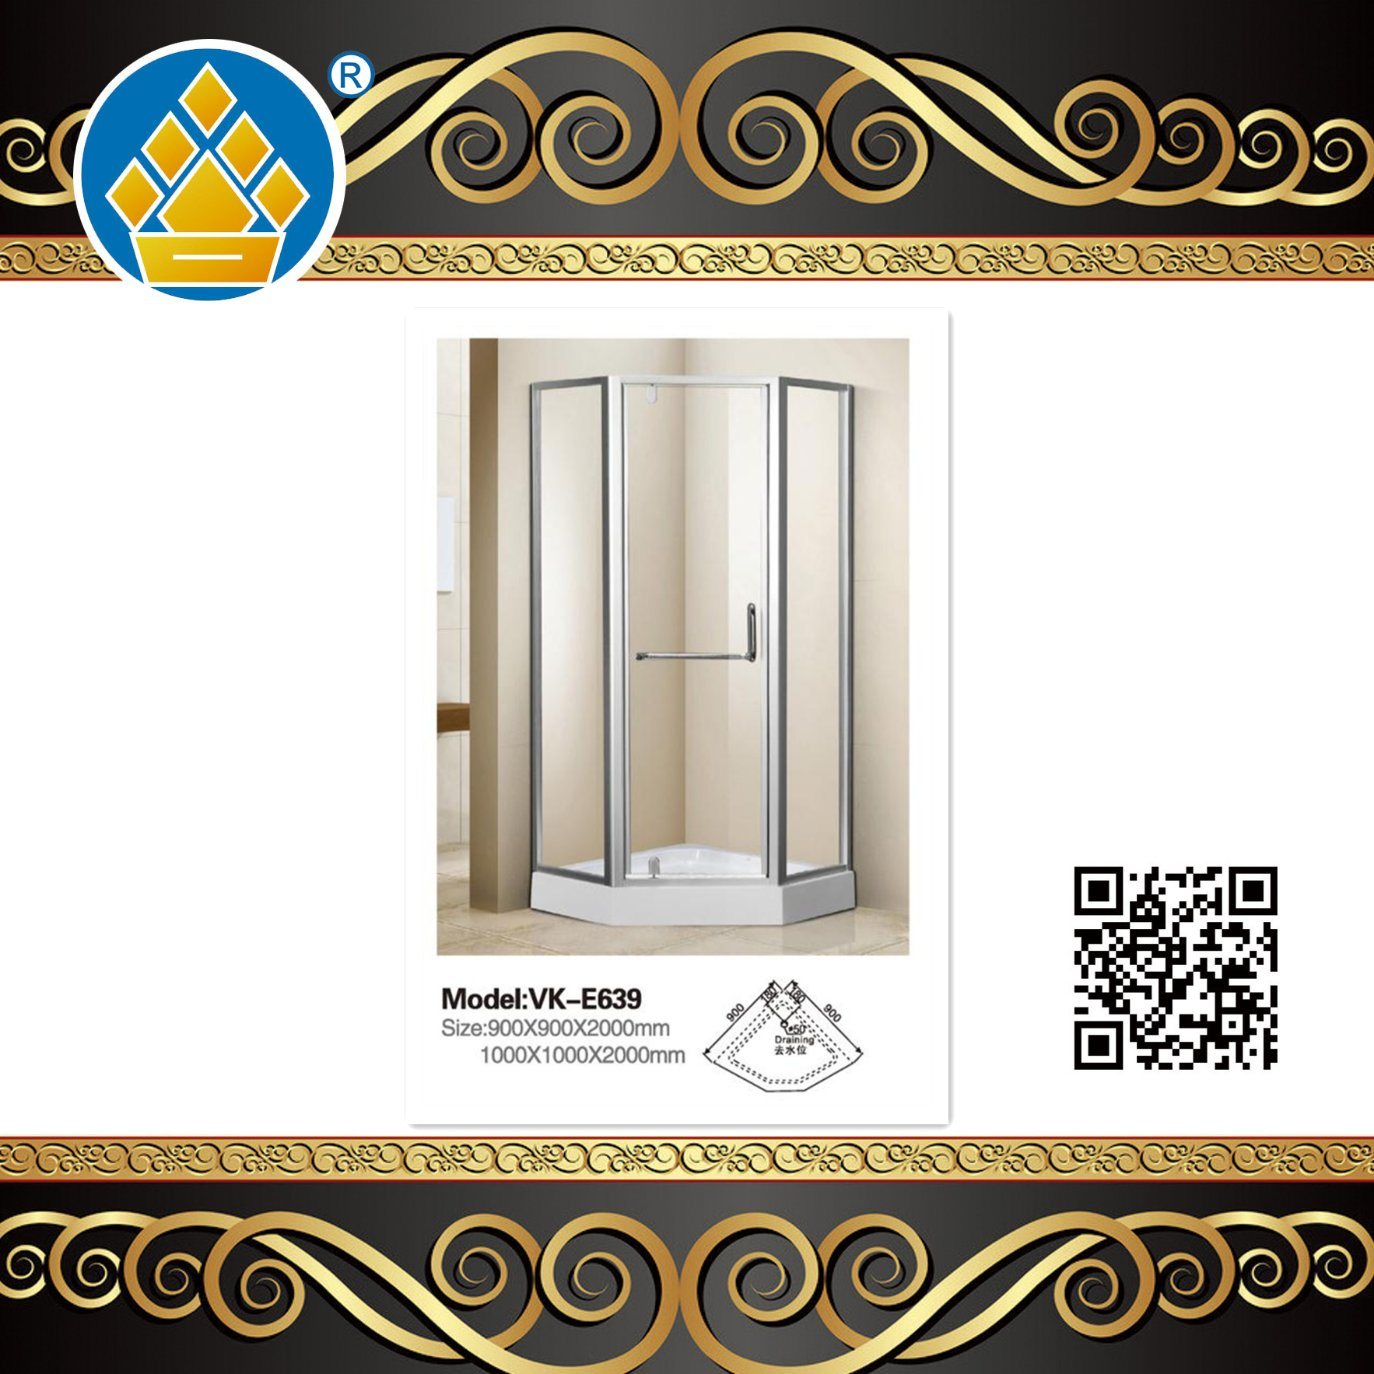 Hot Item Modern Series Portable Frosted Glass Shower Enclosure Diamond Shape Shower Room Shower Cabin With French Antique Brass Plate